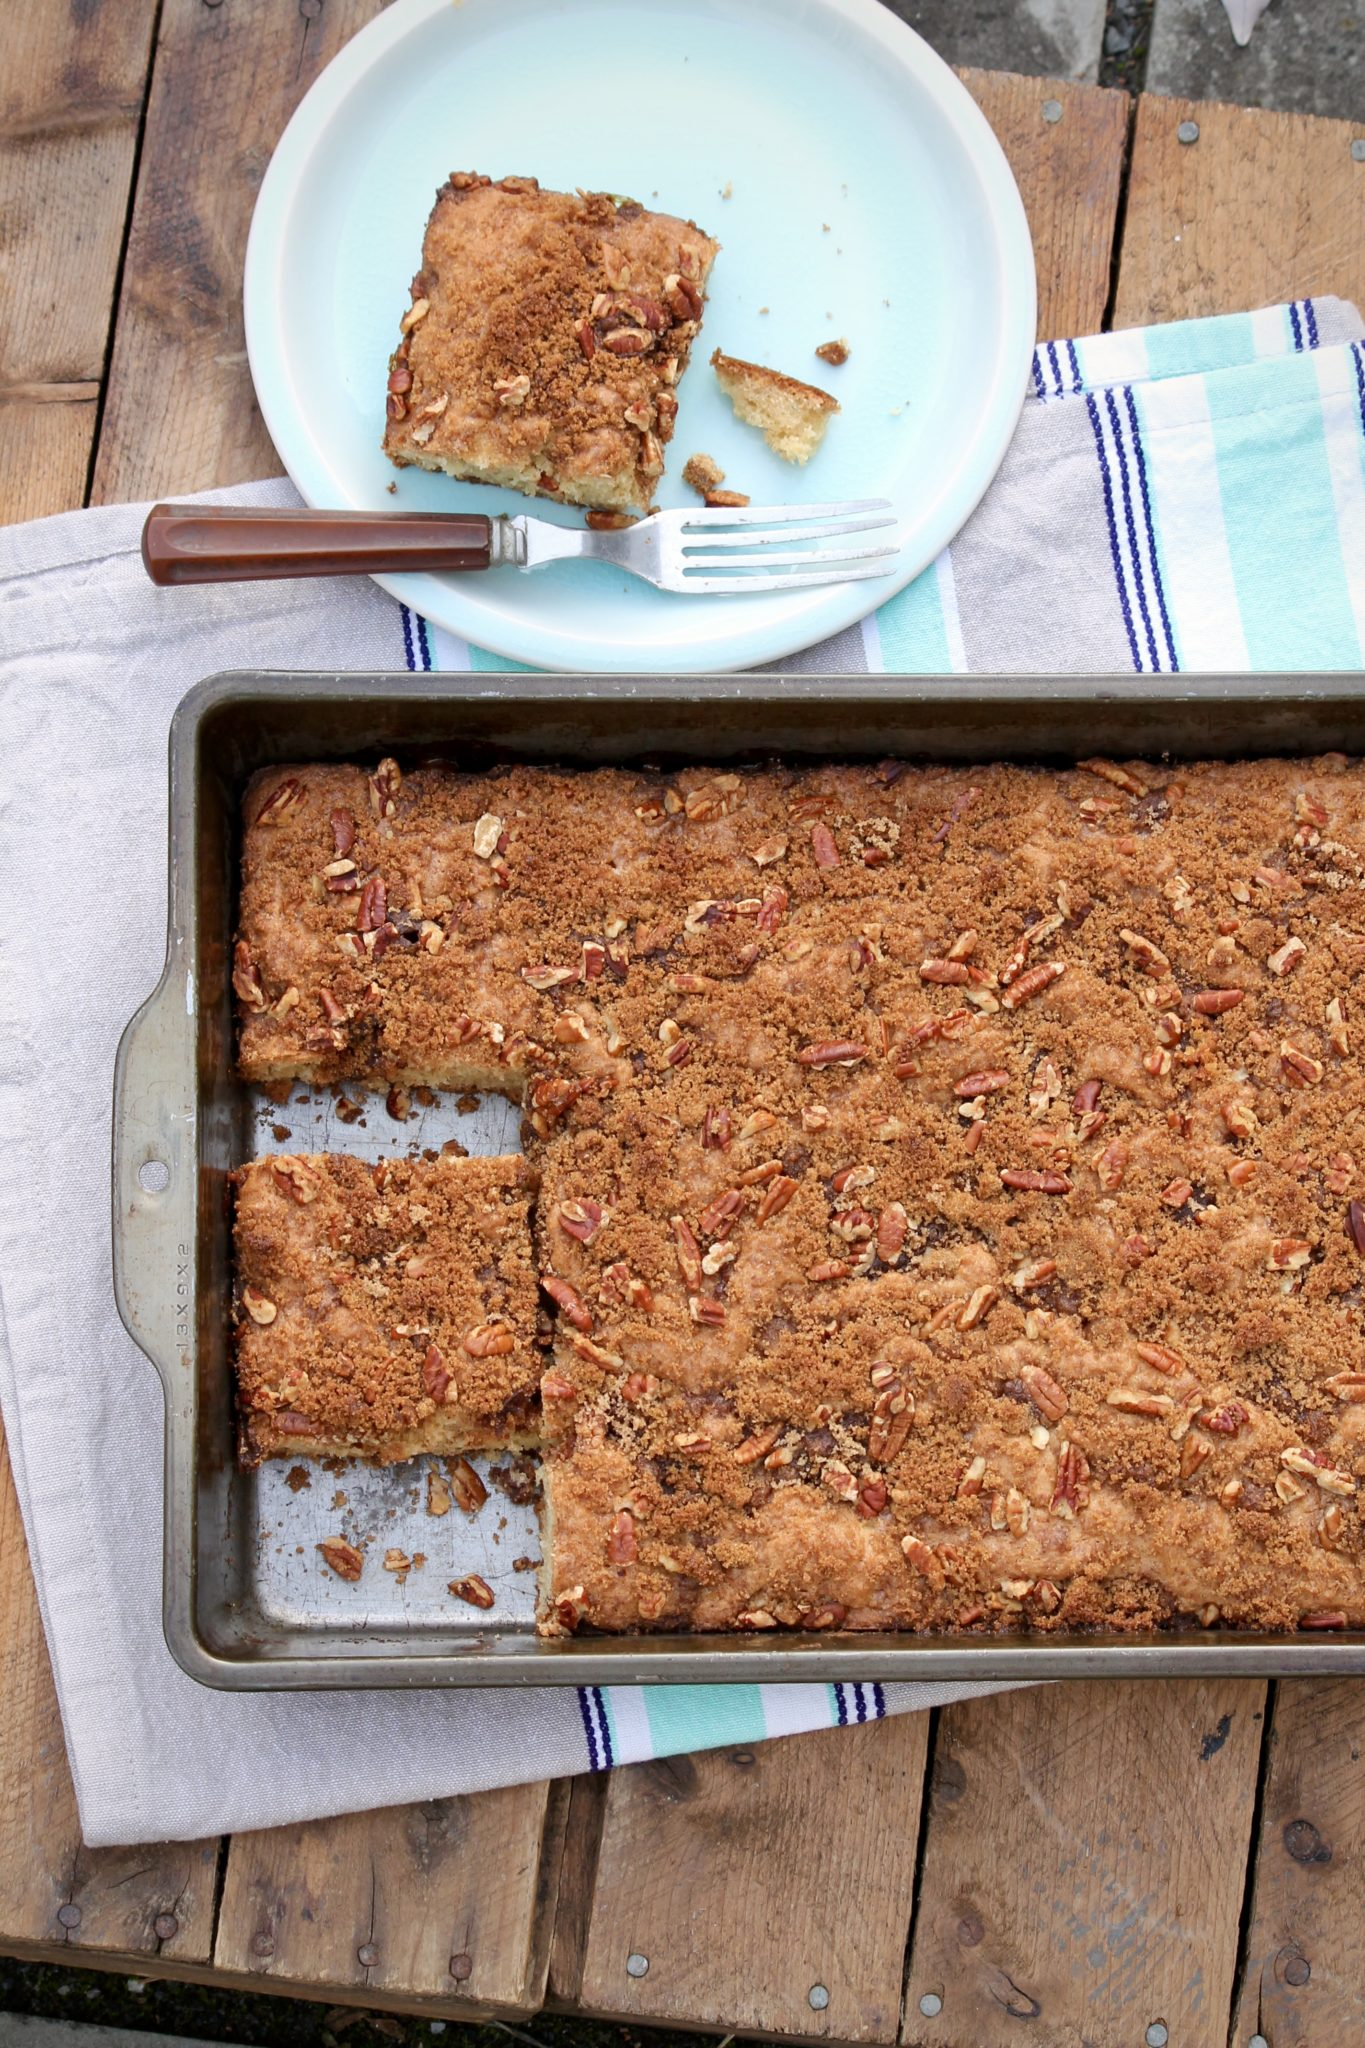 Overnight Cinnamon Pecan Coffee Cake is a longtime family favorite. Classic yet super simple, this recipe tastes just like a good coffee cake should!